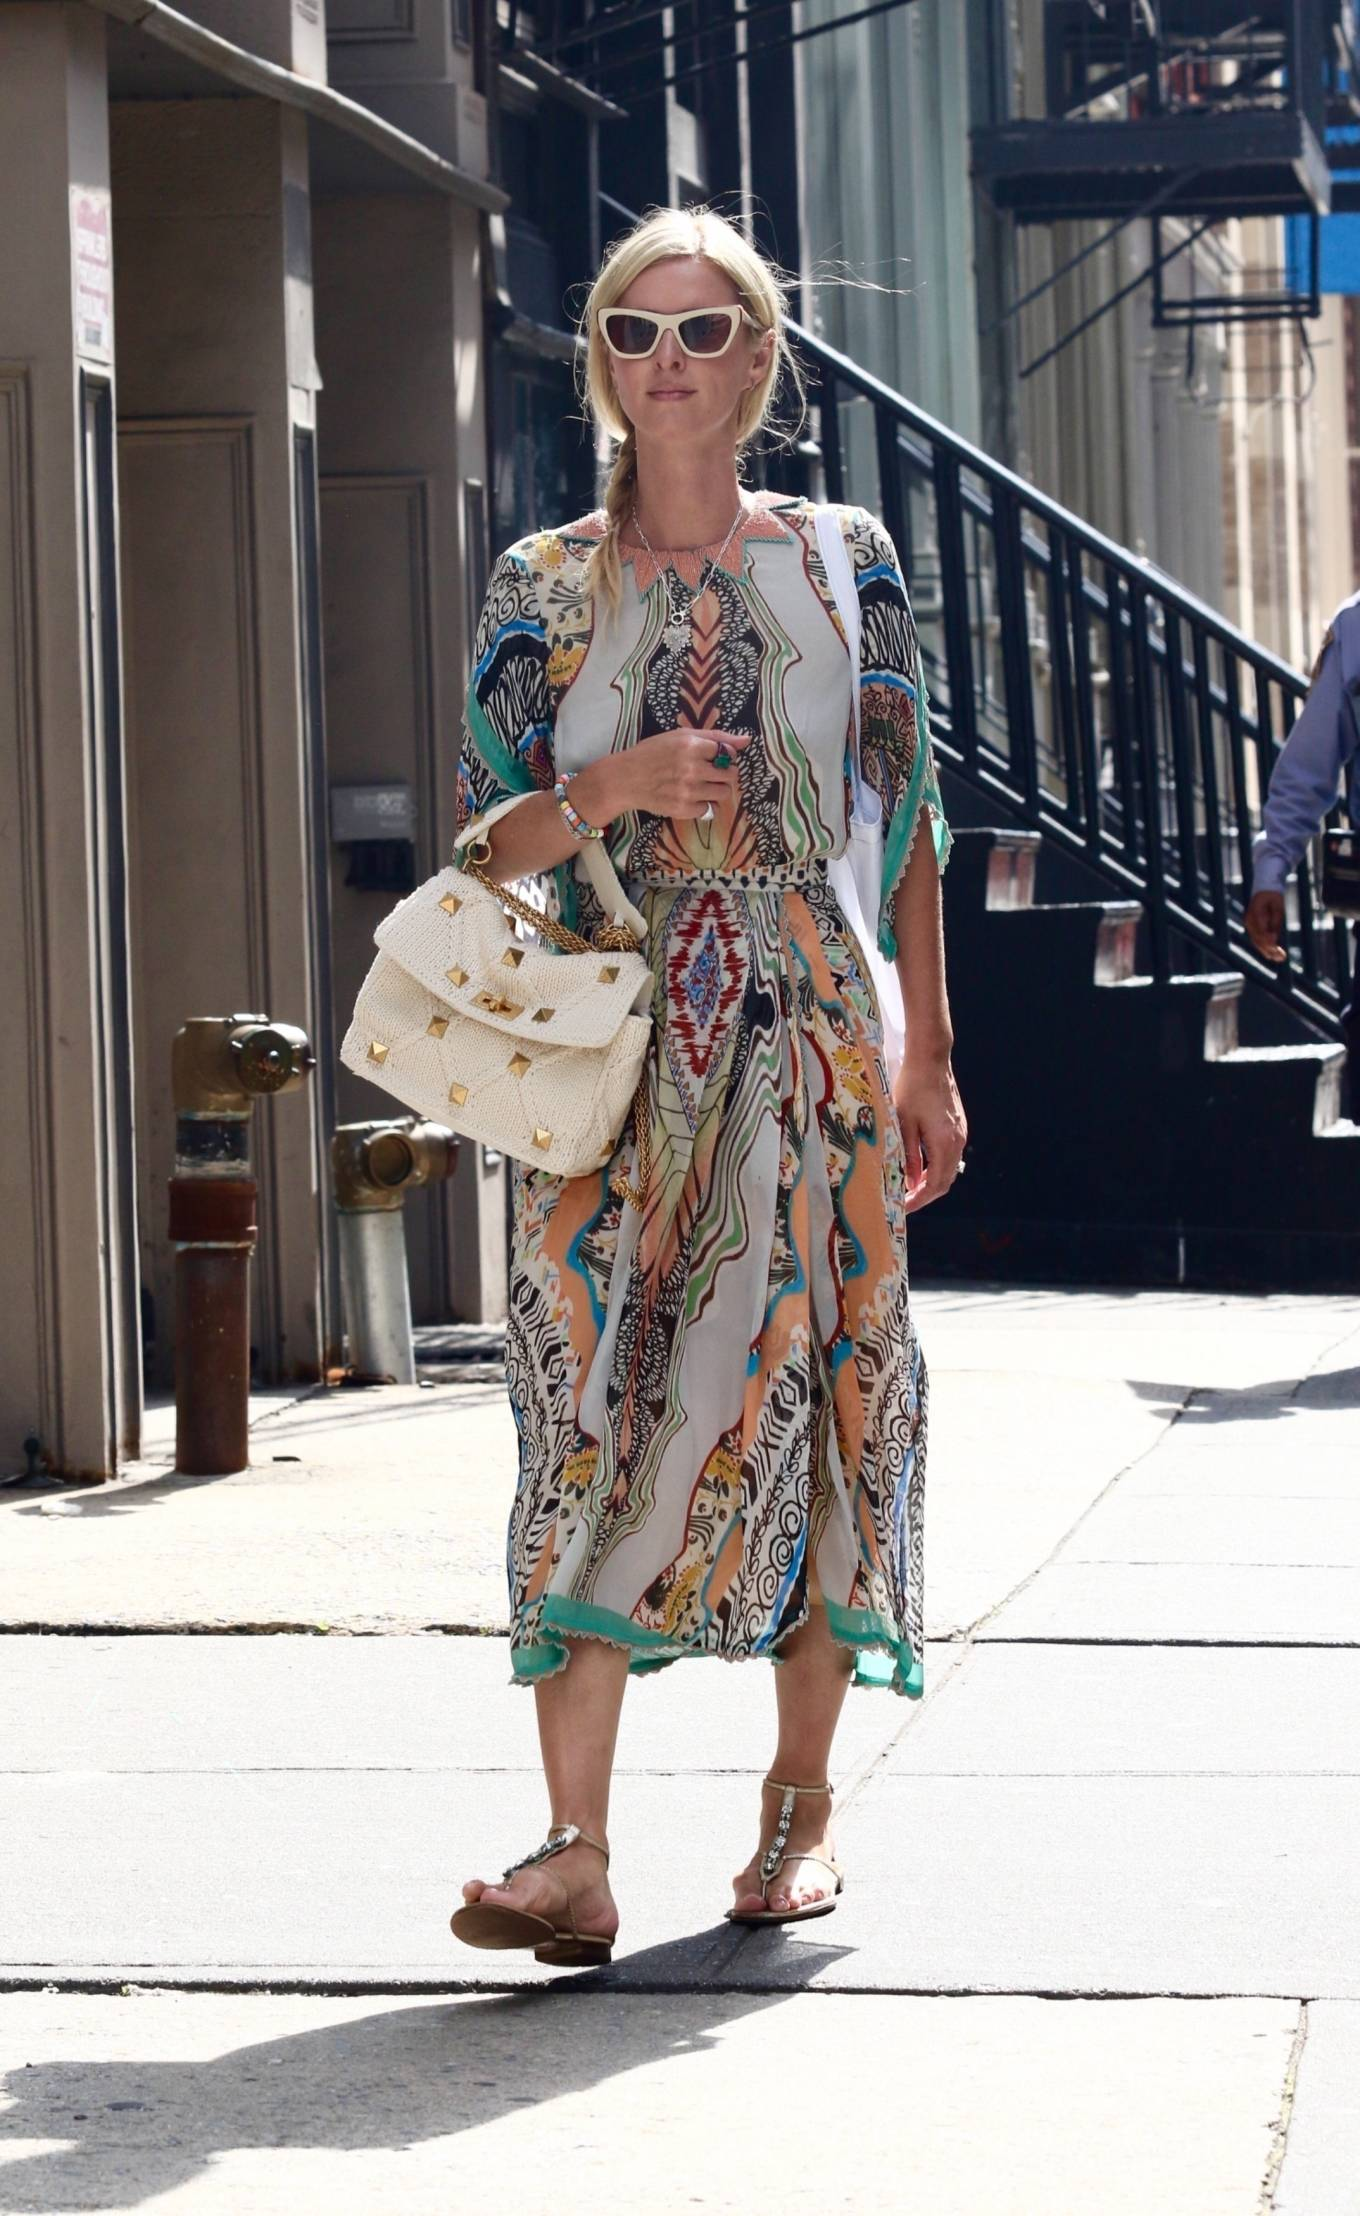 Nicky Hilton - In a colorful summery dress out on Labor Day Weekend in Manhattan's Soho area